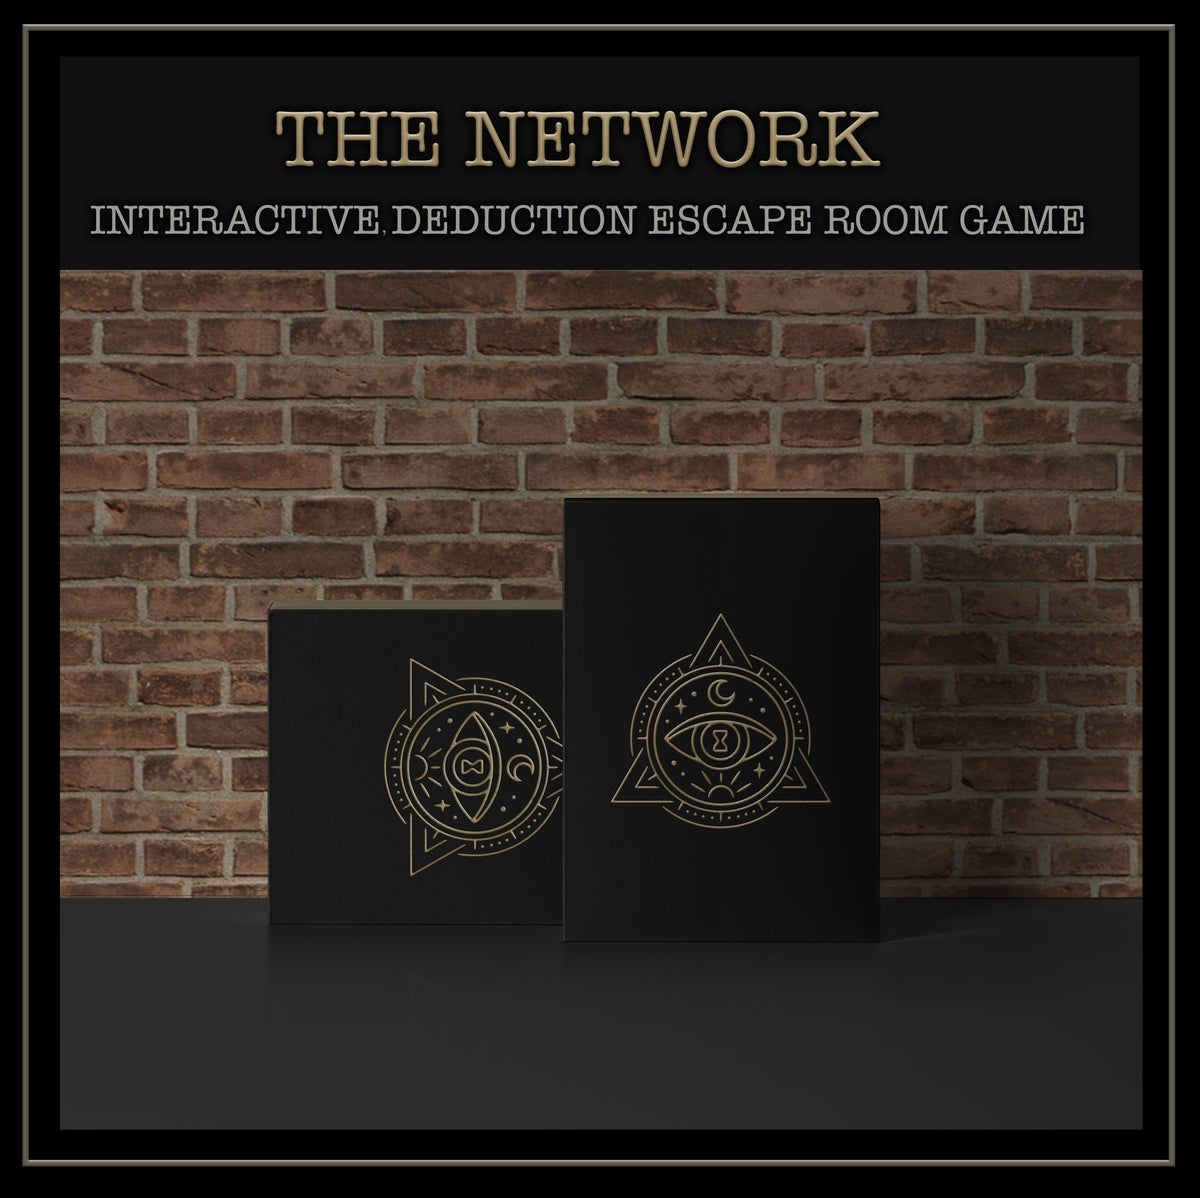 The Network  - An Immersive, Luxury, Escape Room Deduction Game In A Box